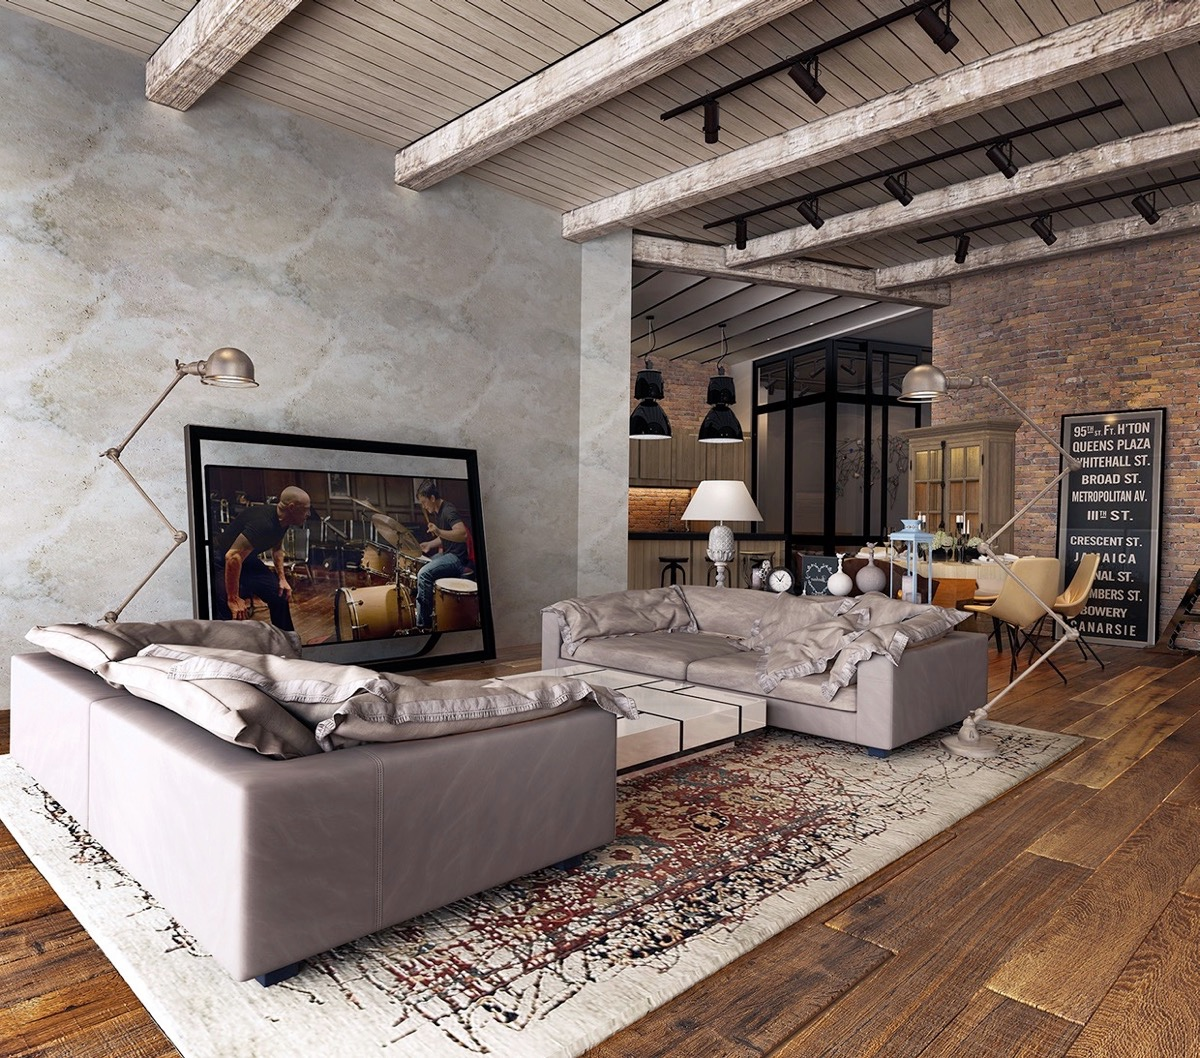 exposed-ceiling-beams-rustic-industrial-living-room